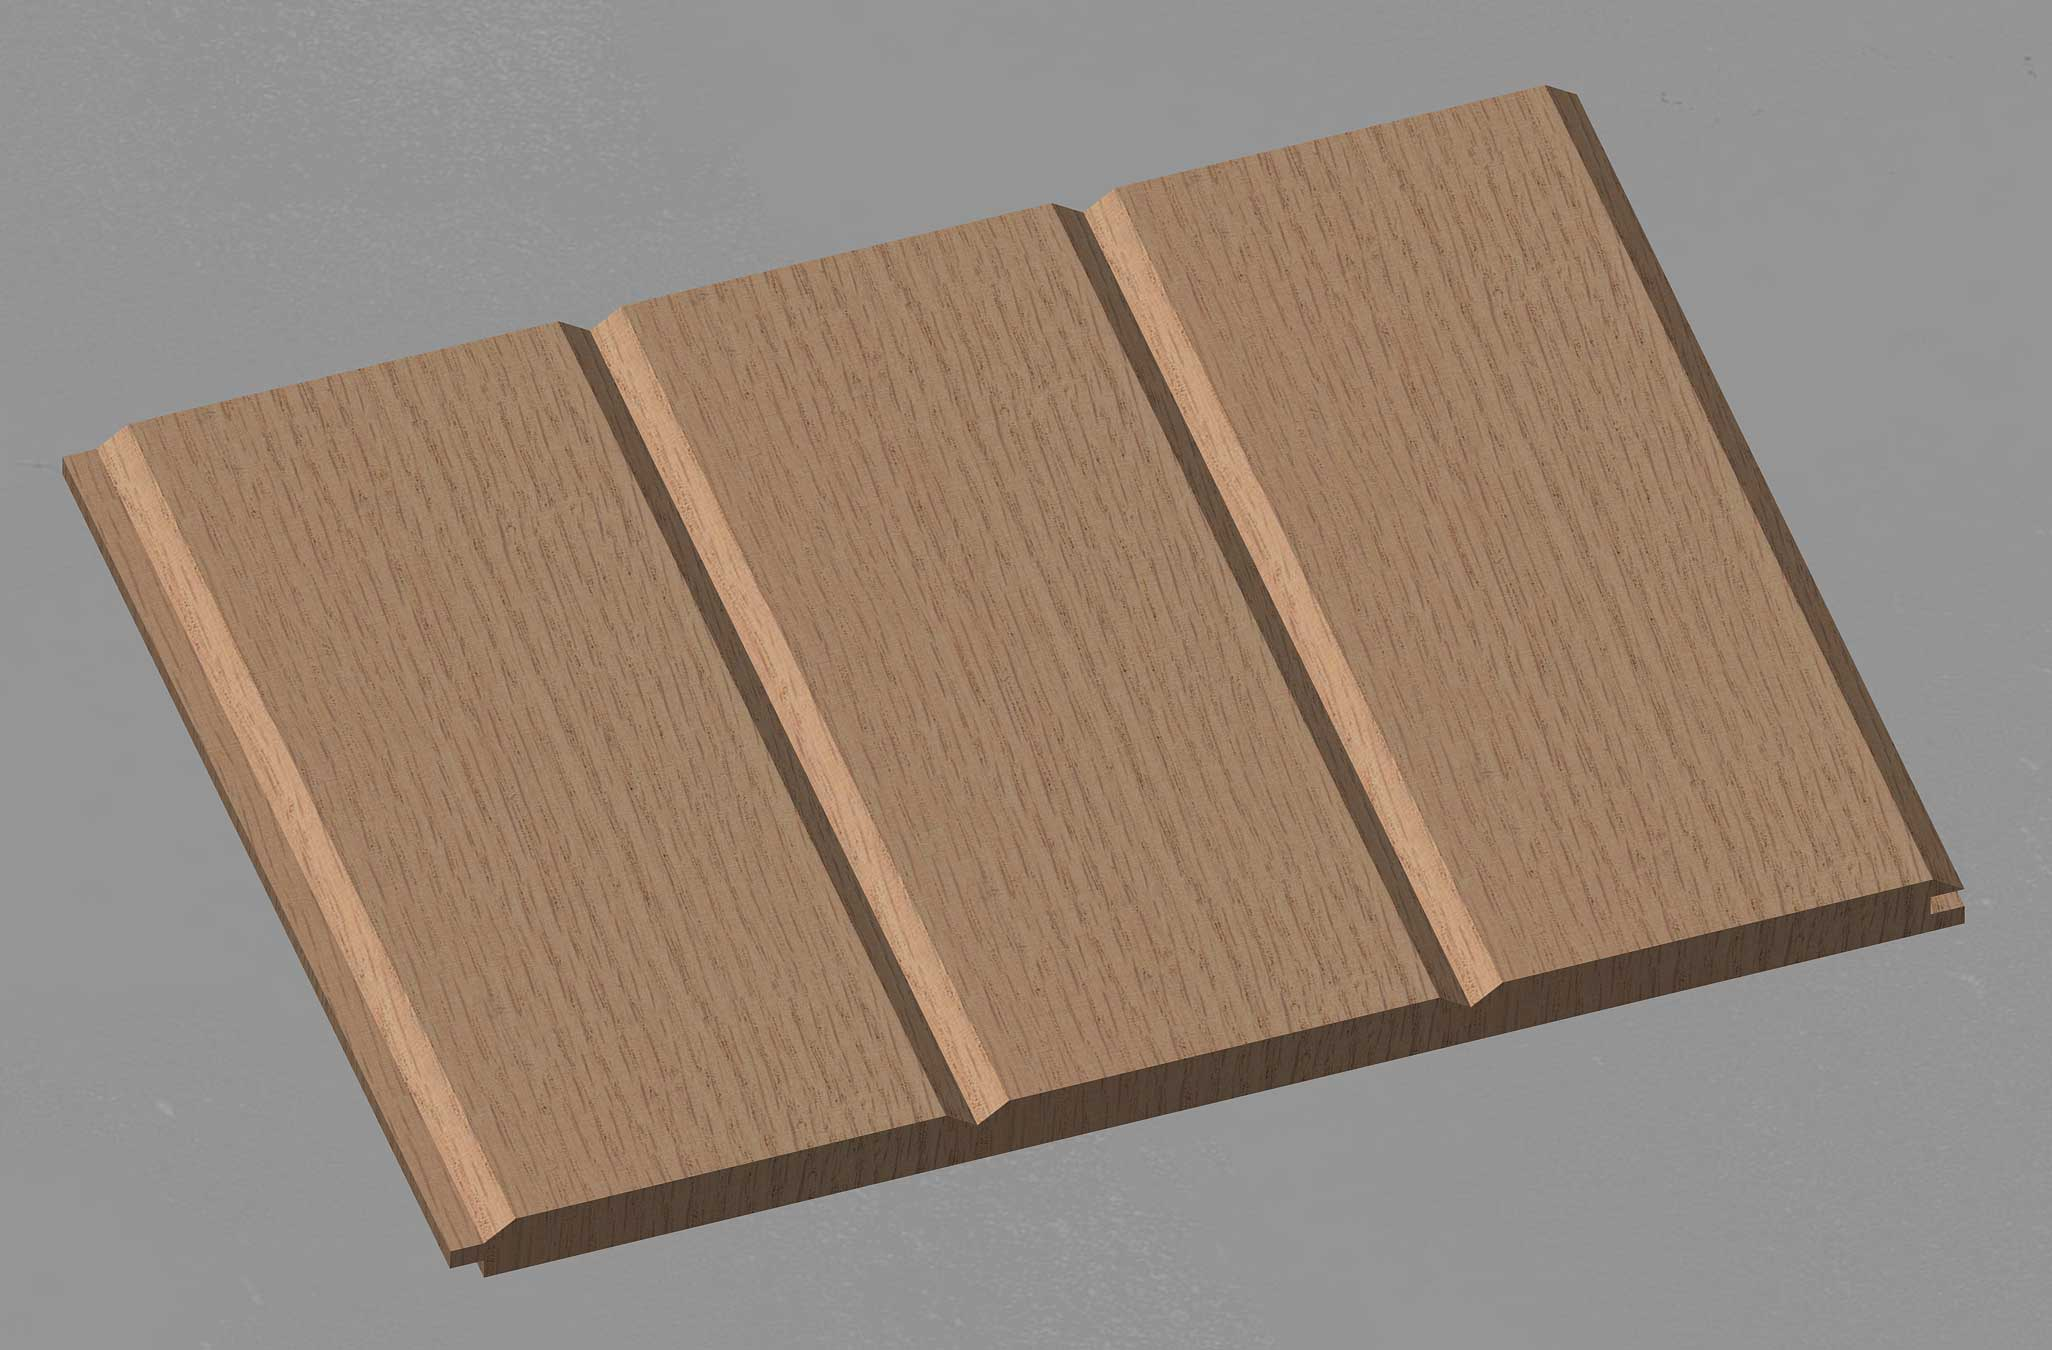 Tongue and groove t g cladding cedar cladding cl101 for Bathroom t g cladding